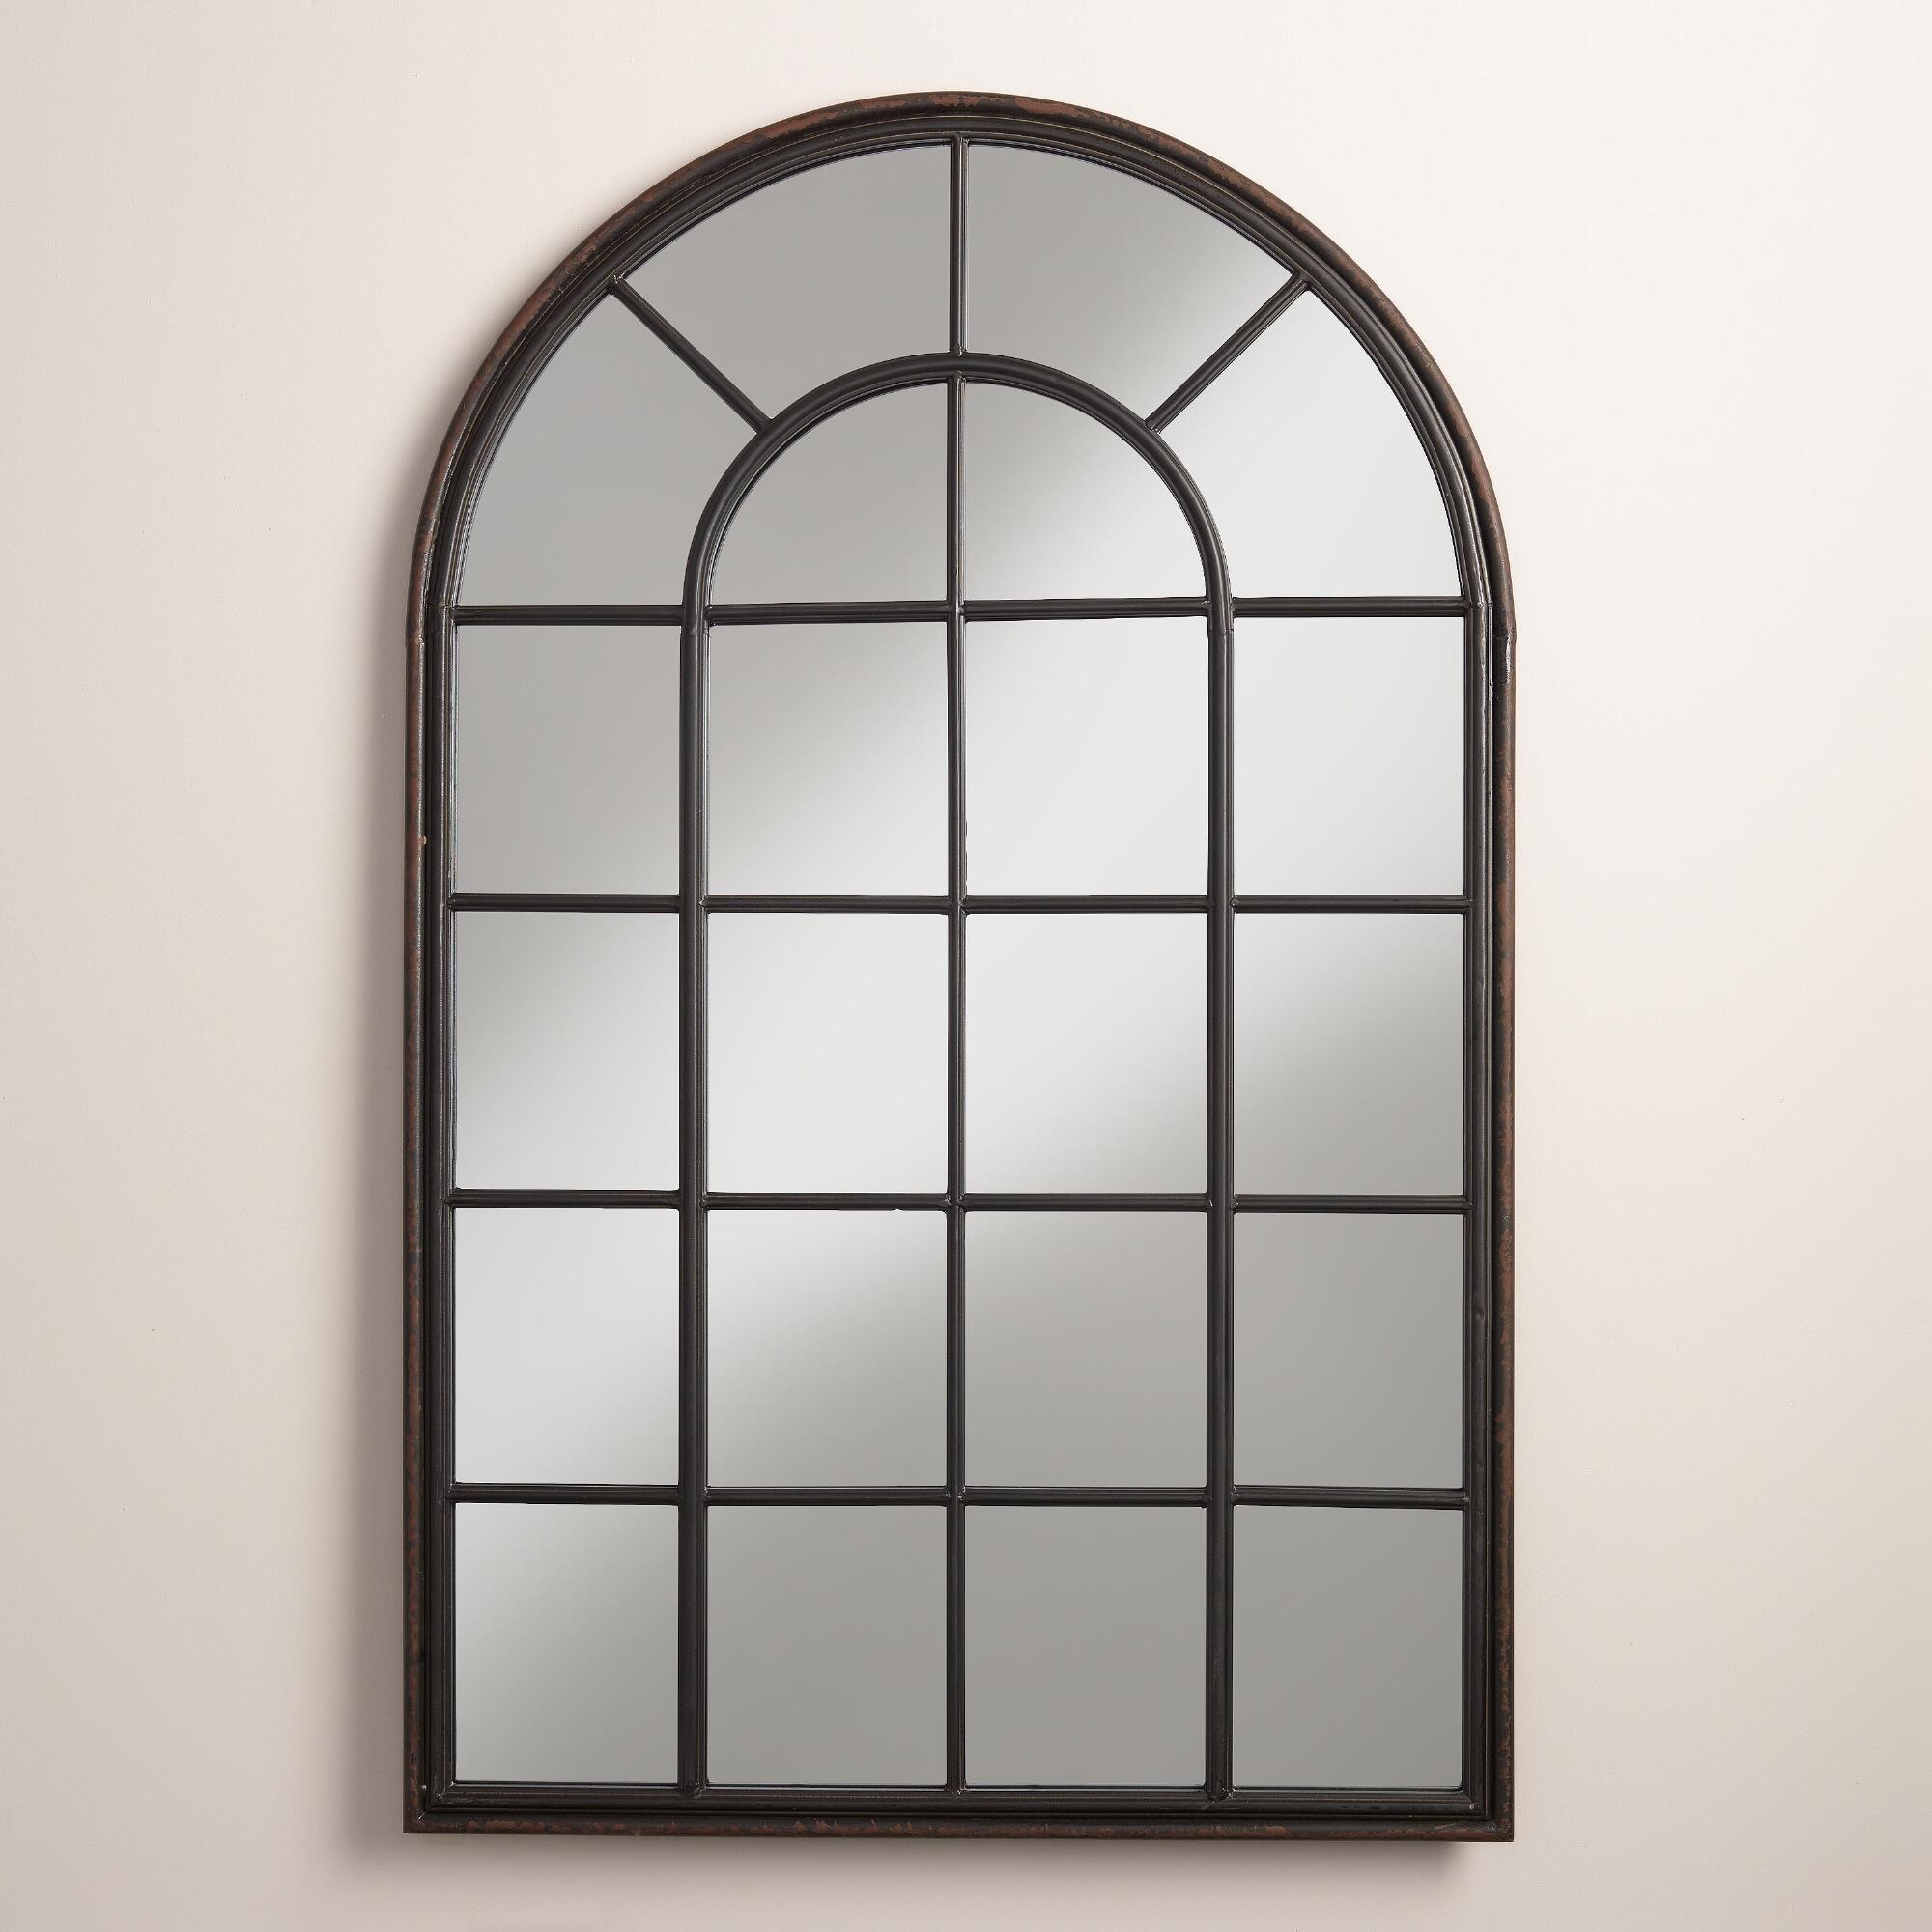 Black Window Pane Mirror Shop Tyler Dillon Superior 34 In X 38 In With Regard To Mirror Shop Online (Image 5 of 20)